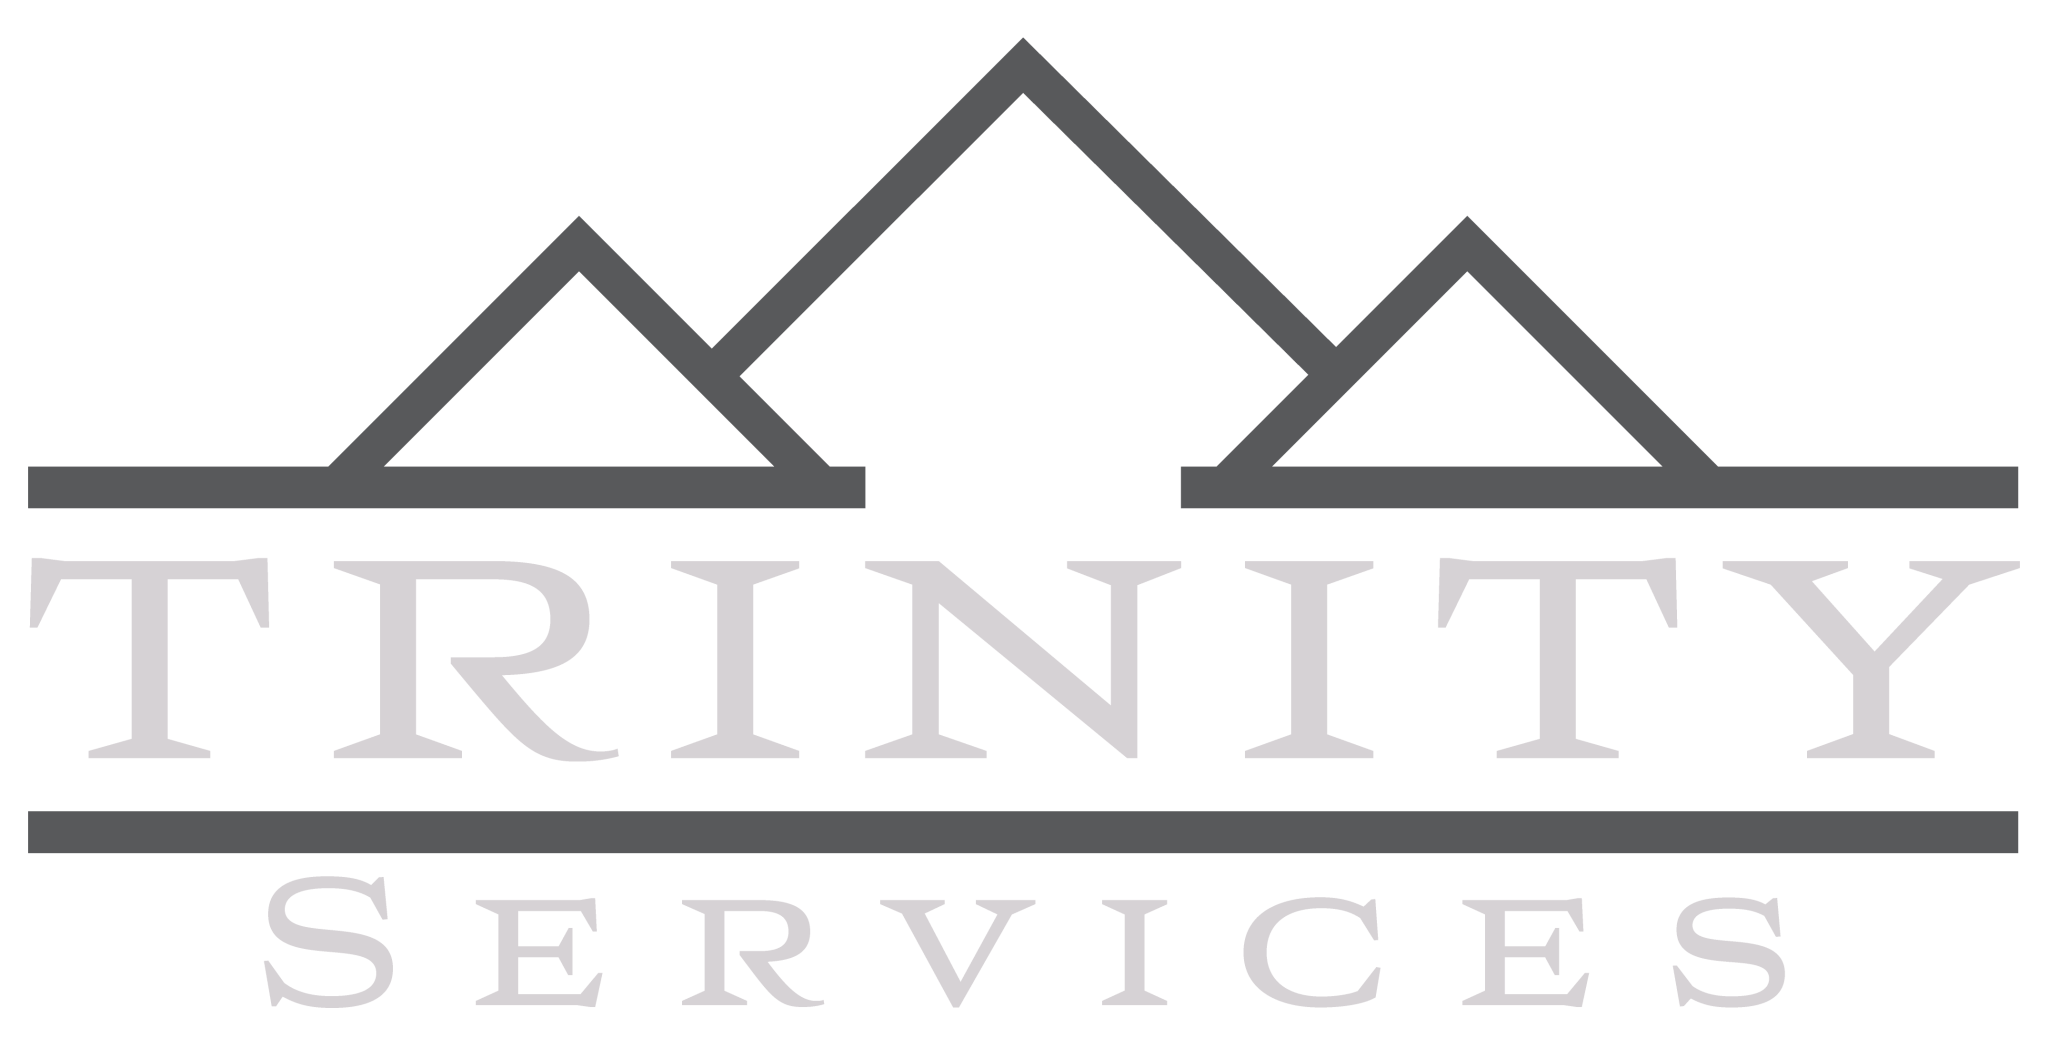 TRINITY_SERVICES_LIGHT